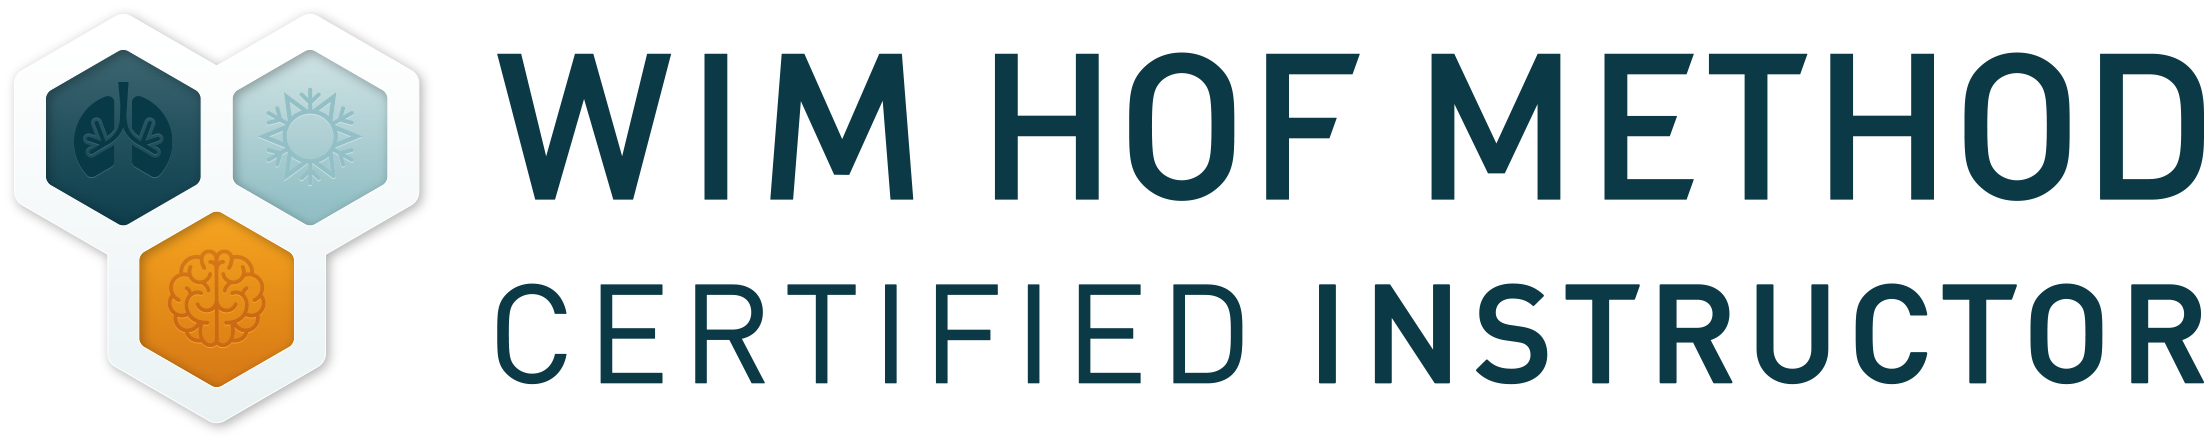 whm_cerftified_instructor_logo_01.png